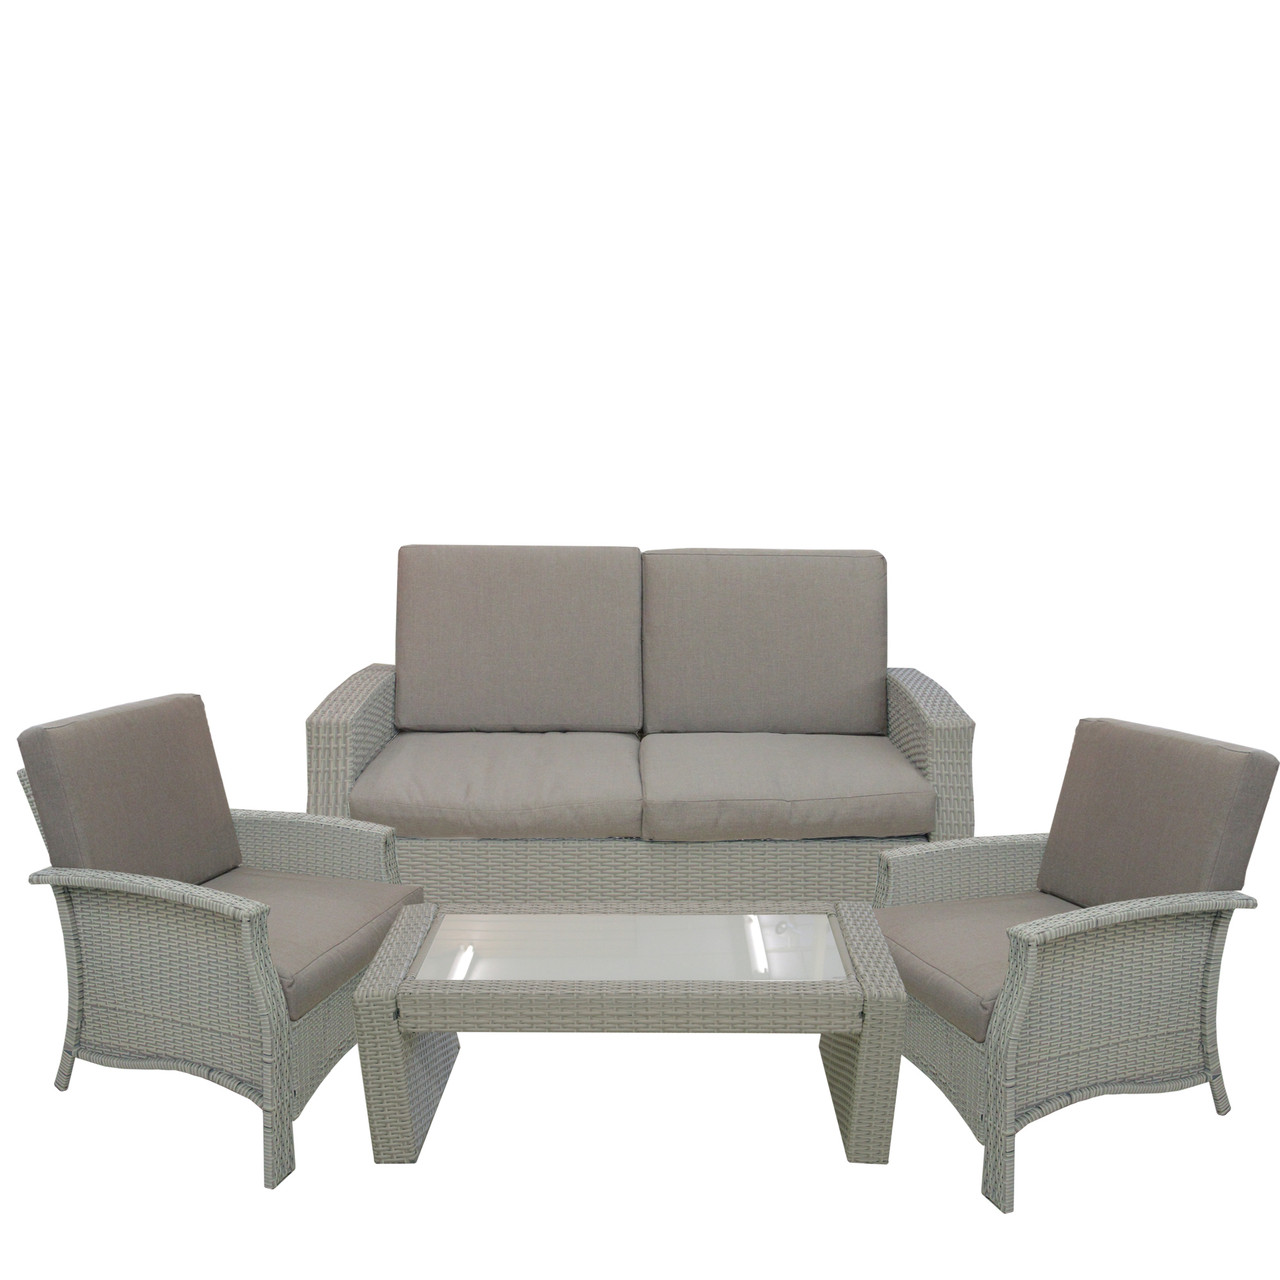 4pc Gray Wicker Outdoor Patio Furniture Set 57 75 Christmas Central